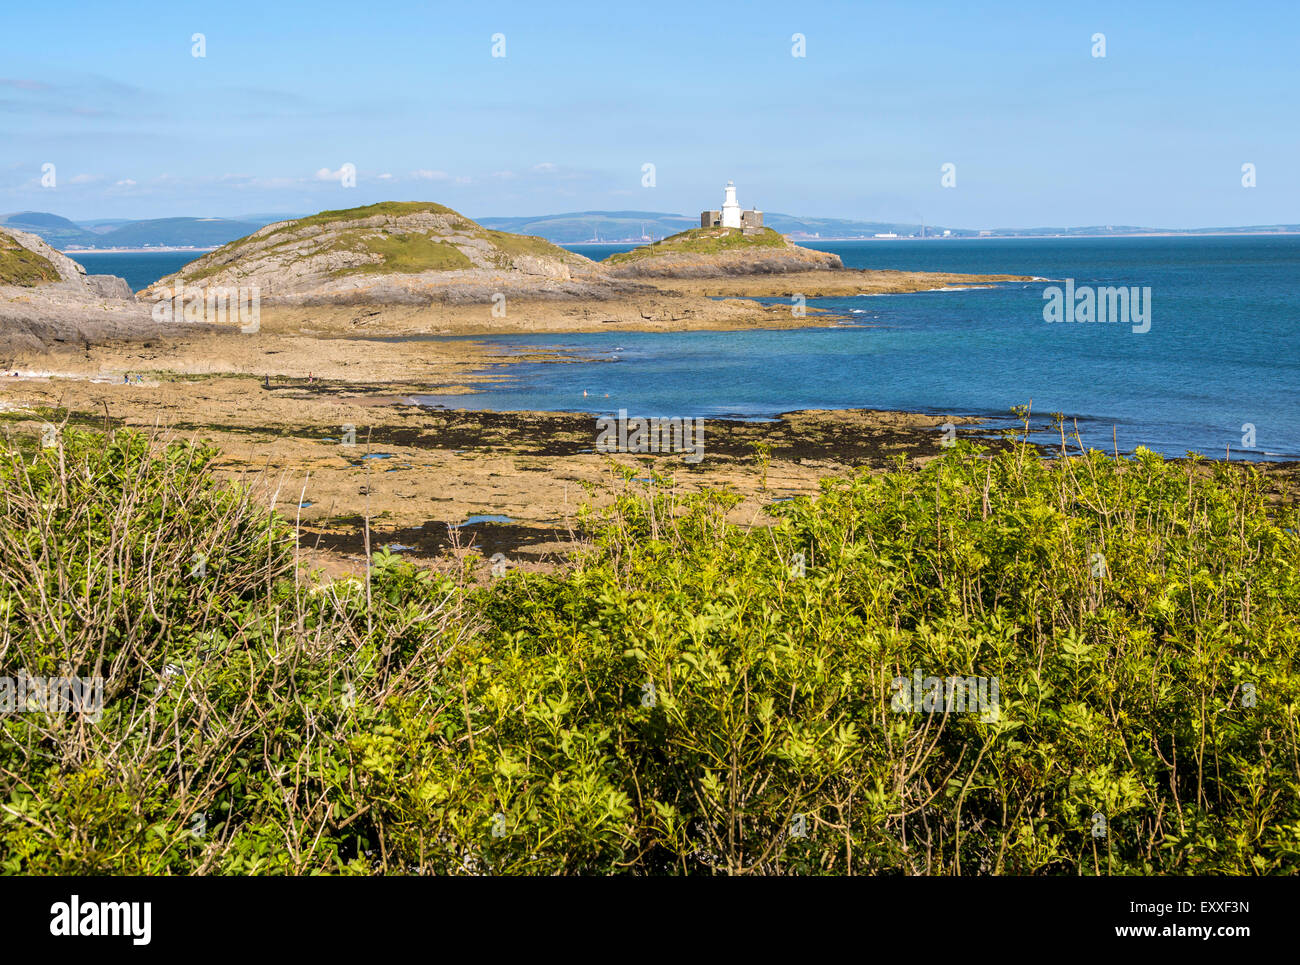 Lighthouse at Mumbles Head, Gower peninsula, near Swansea, South Wales, UK - Stock Image